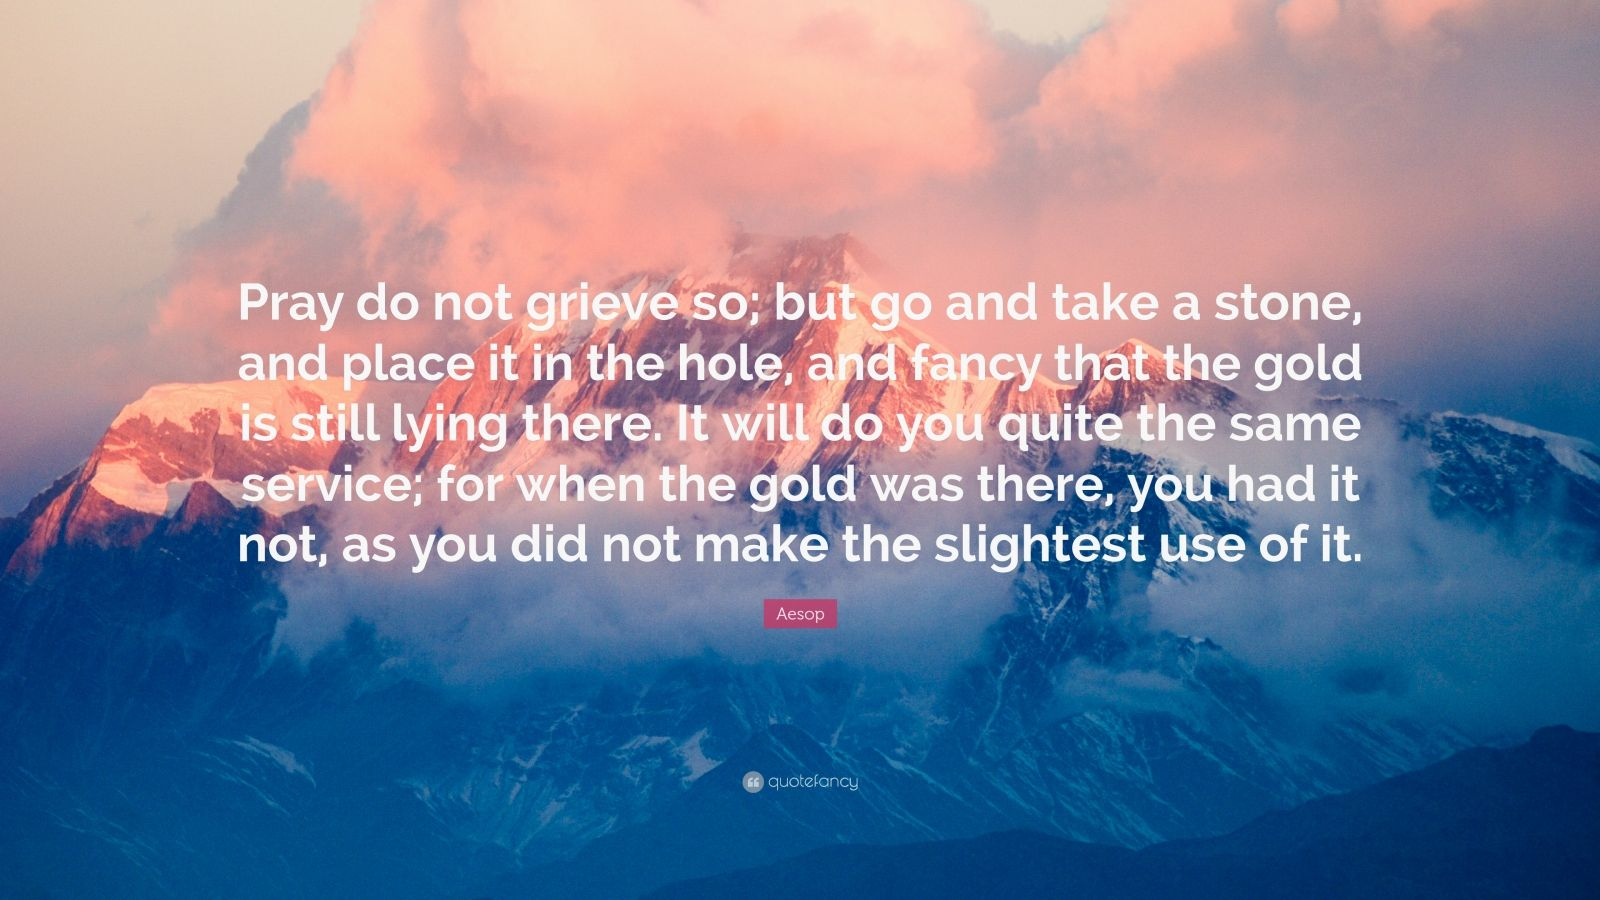 """Aesop Quote: """"Pray do not grieve so; but go and take a stone, and place it in the hole, and fancy that the gold is still lying there. It will do you quite the same service; for when the gold was there, you had it not, as you did not make the slightest use of it."""""""